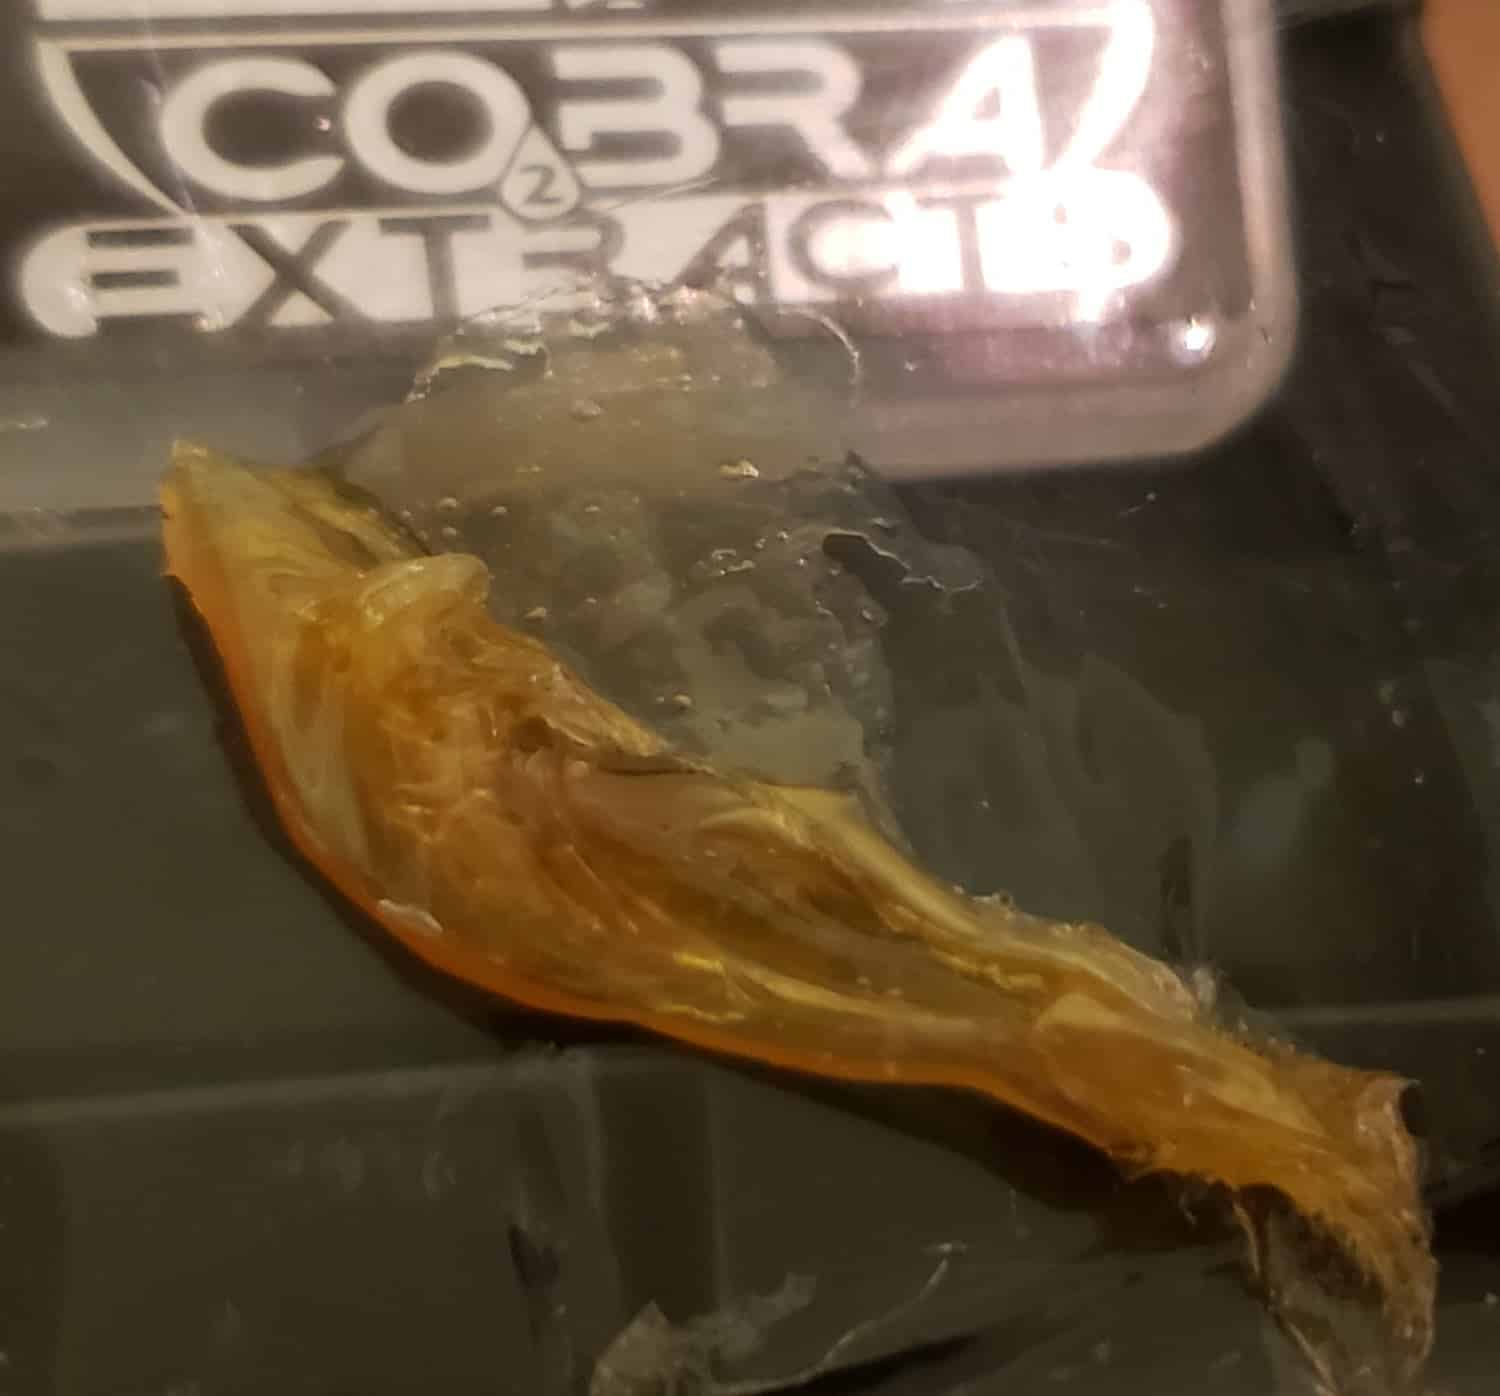 Cobra Extracts Mimosa Shatter